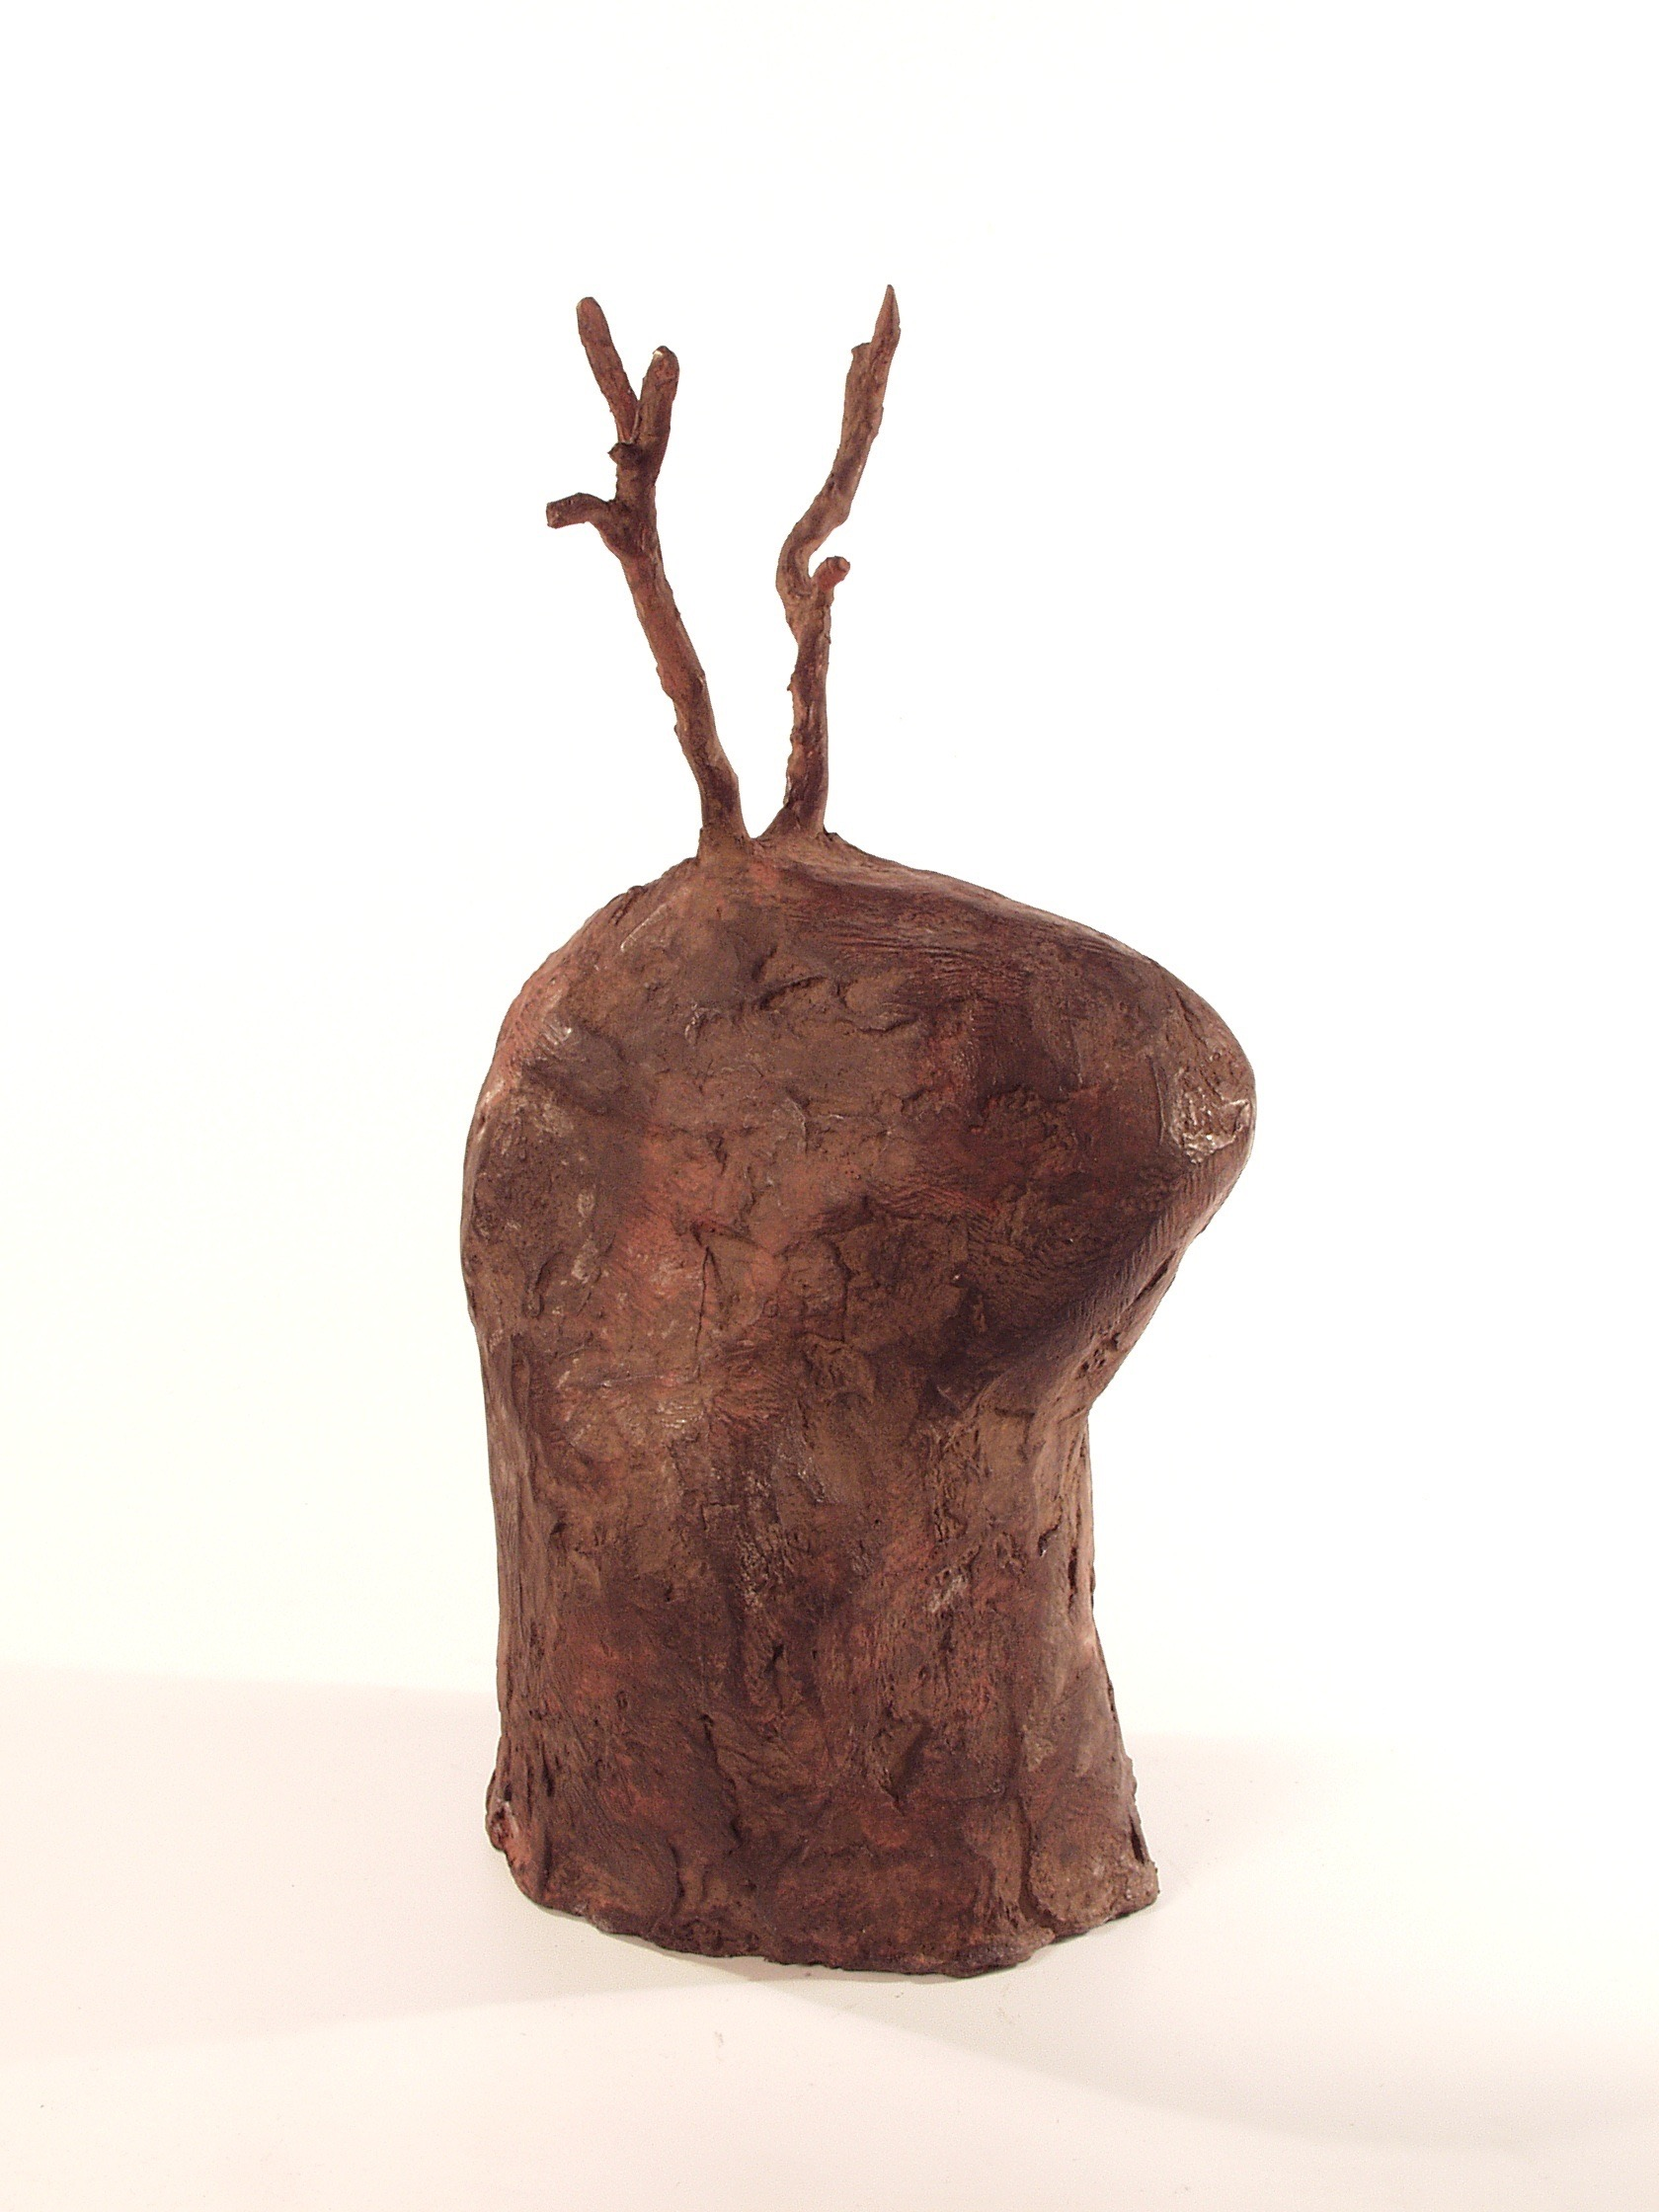 Prophet, bronze (edition of 3), 46 X 21.5 X 22 cm, 2004